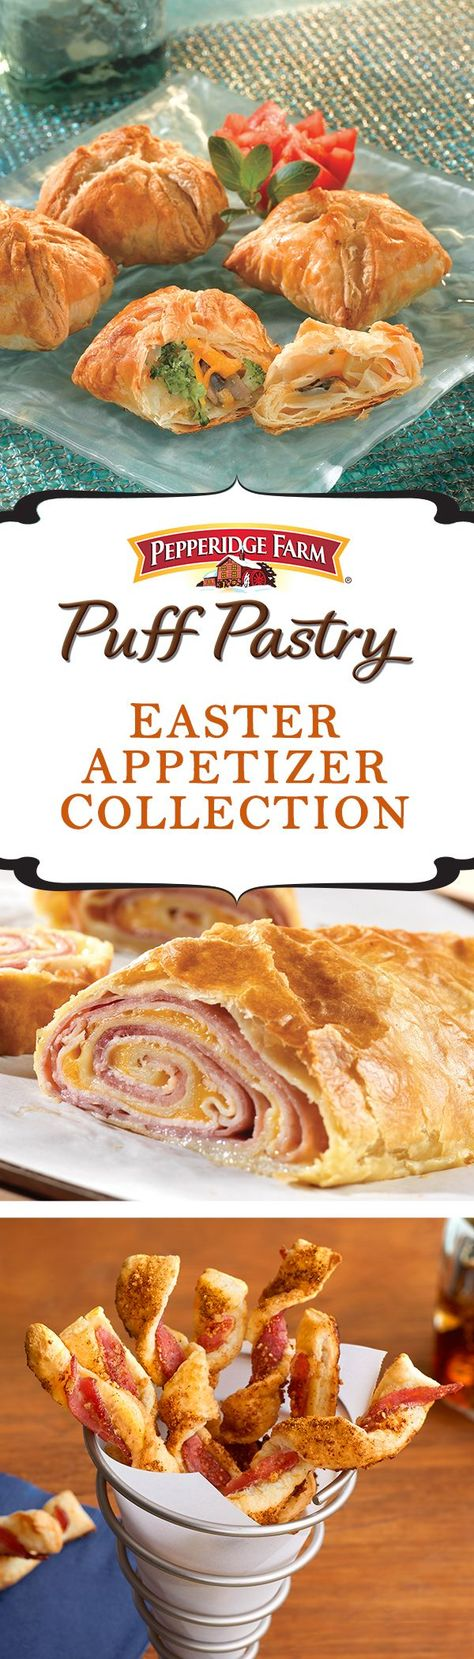 20 best ham recipes to serve this easter food network inducedfo linked20 best ham recipes to serve this easter food network canadabest traditional easter dinner recipes and menu ideasour best easter recipes food forumfinder